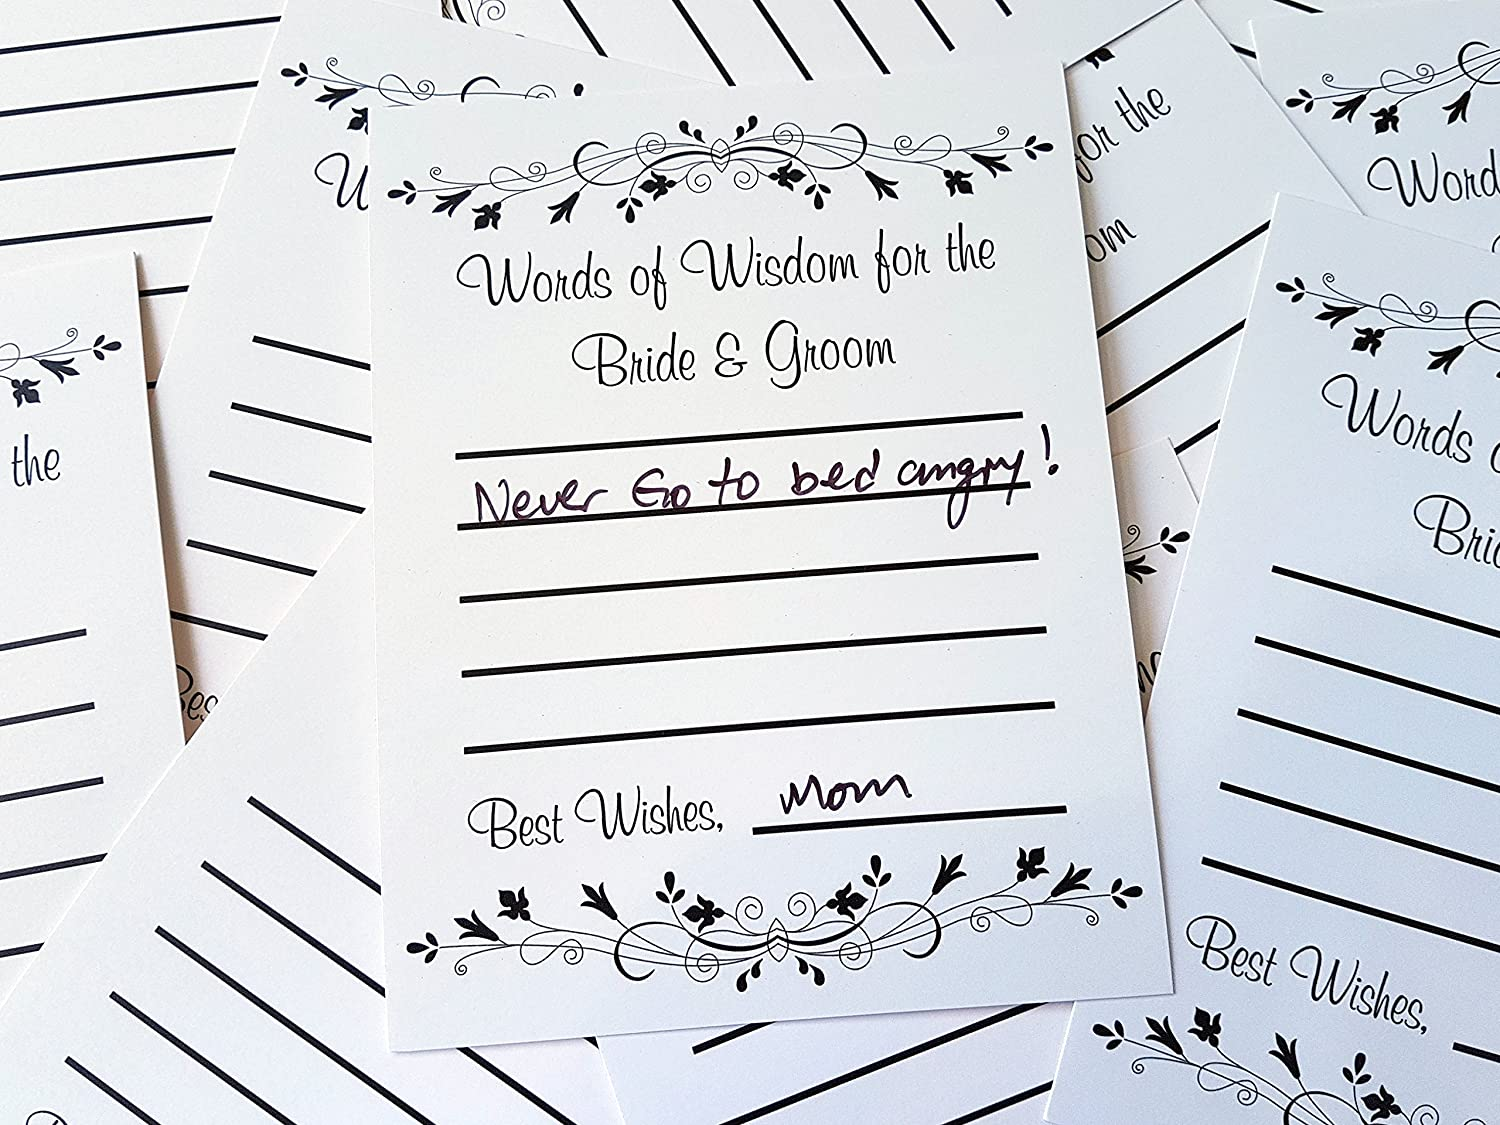 Rustic Wedding Bride /& Groom - Advice for the Newlyweds Set of 10 Bridal Shower Game Wedding Advice Cards Cream Wish Cards